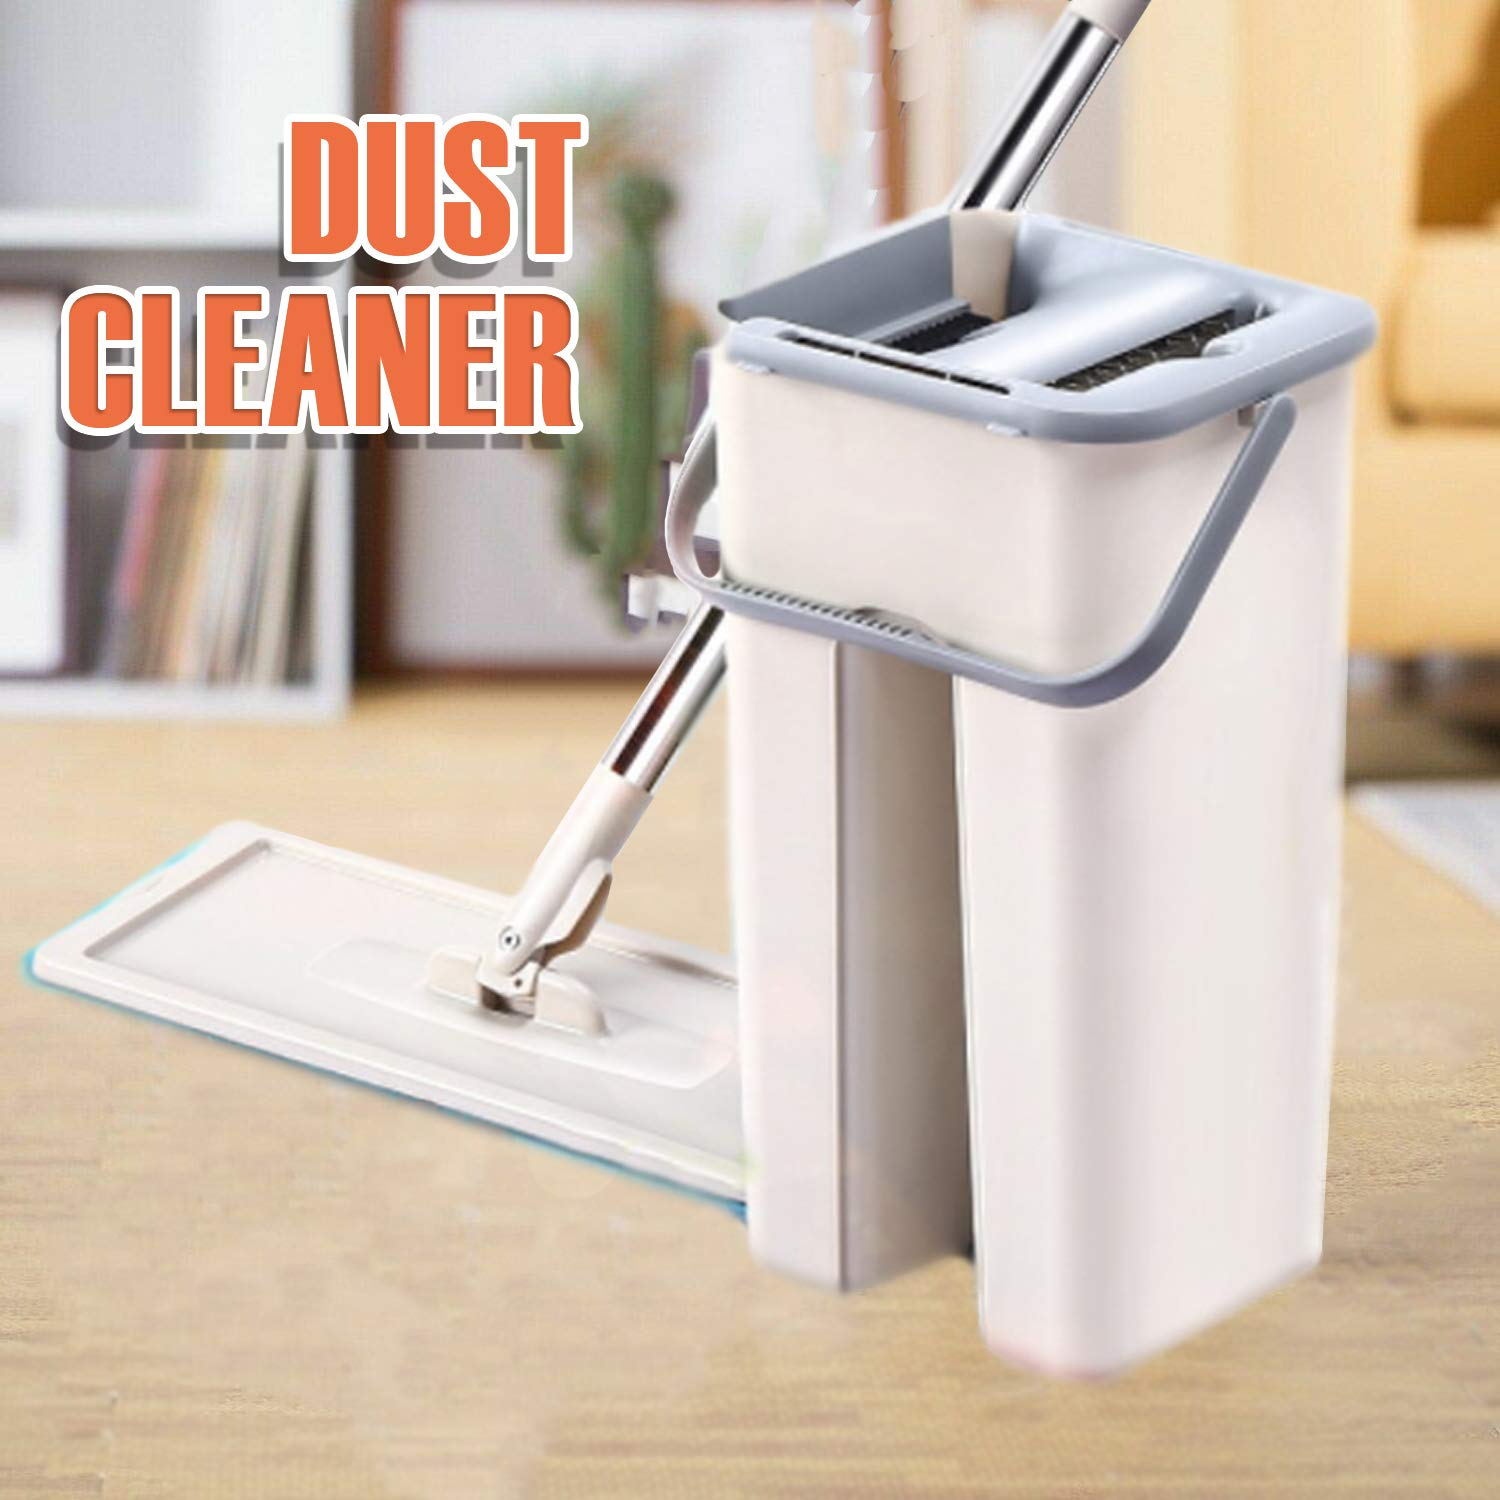 Ovanpa 2019 Ultimate Dust Cleaner